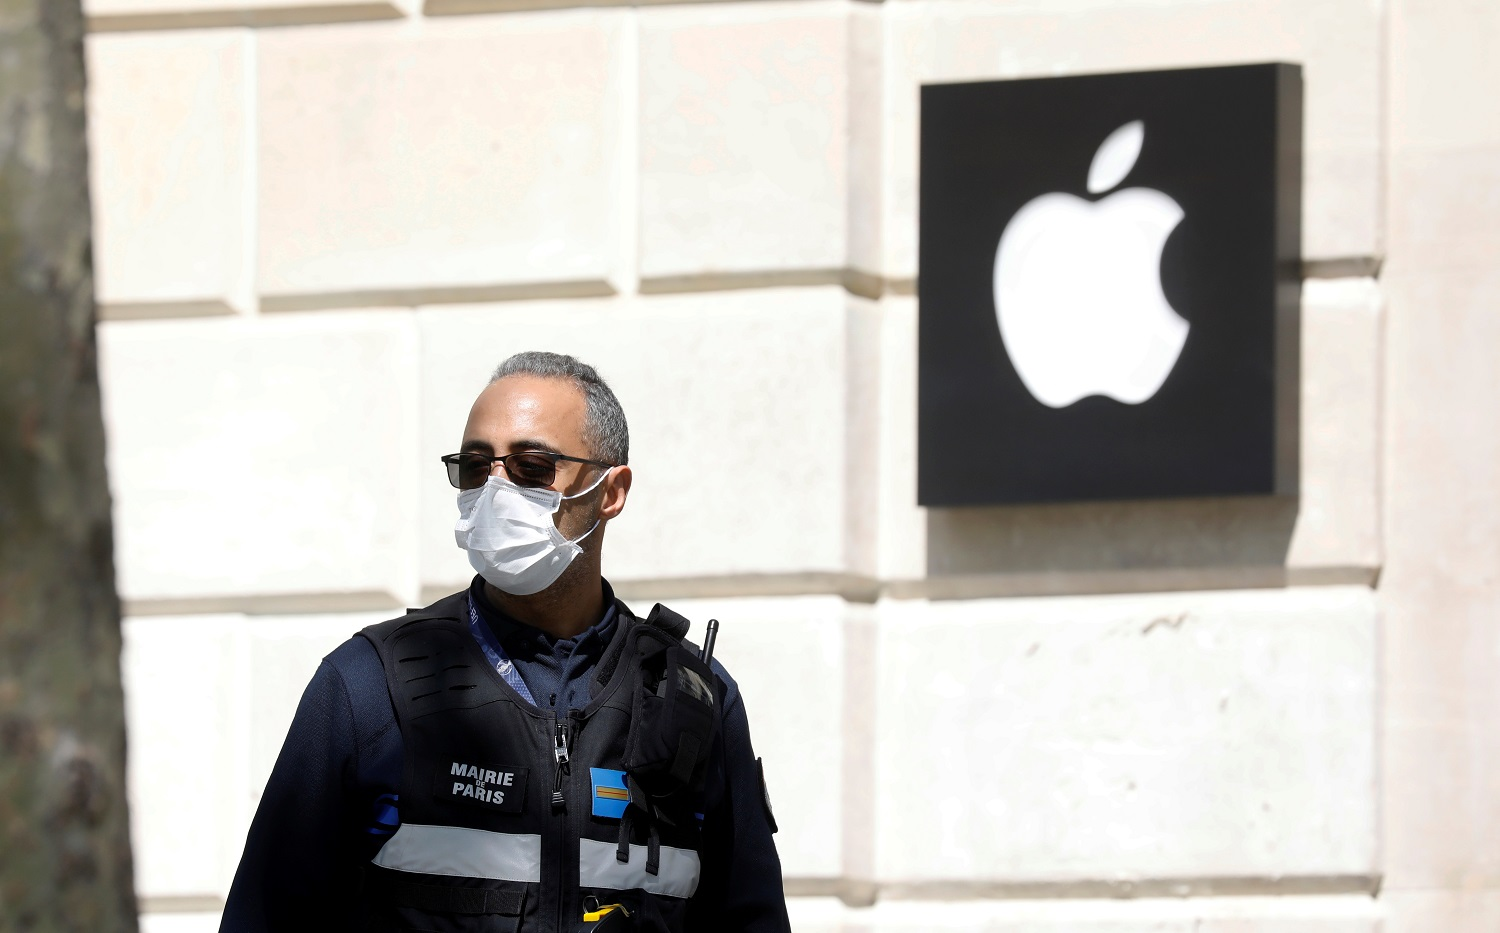 Apple Reluctant Over France's Request to Lift Bluetooth Limits and Allow Contact Tracing App